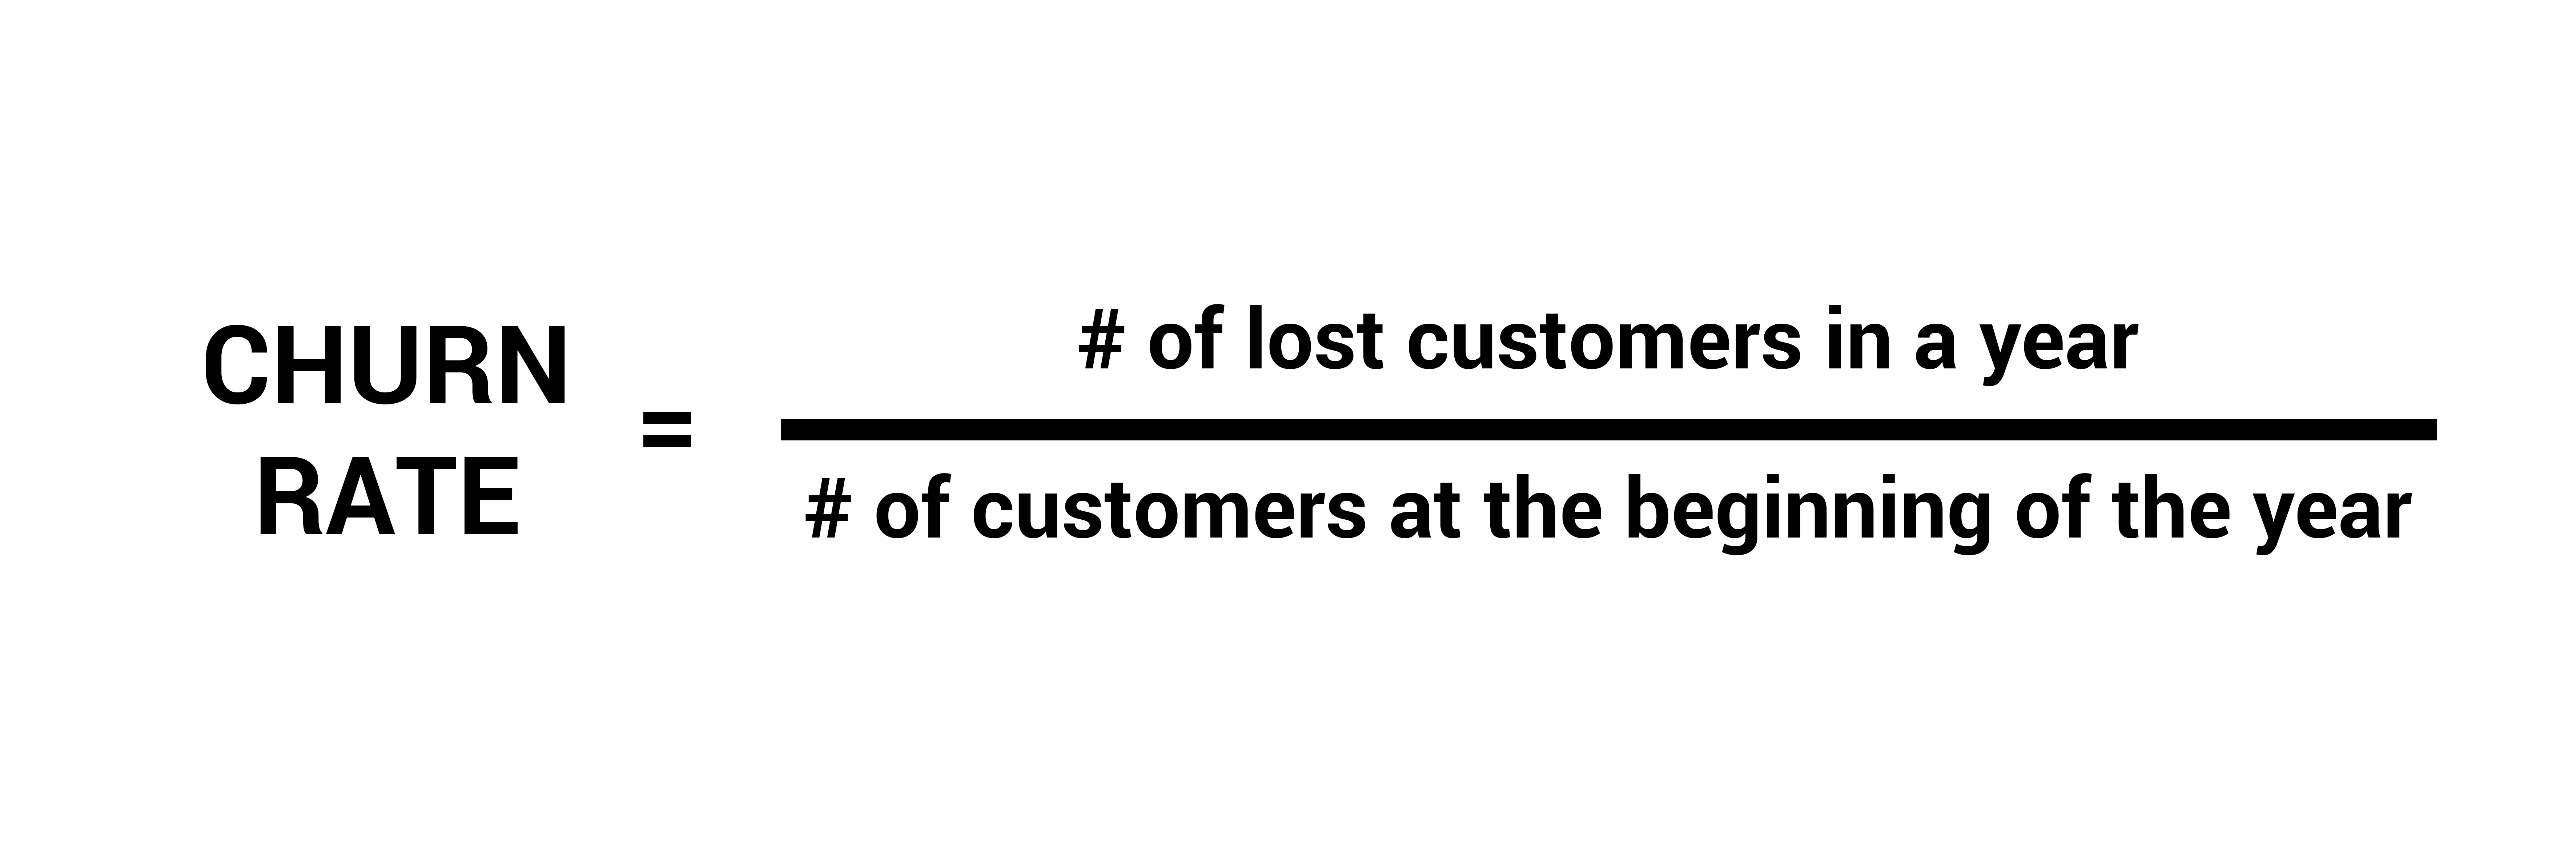 CHURN RATE = # of lost customers in a year / # of customers at the beginning of the year